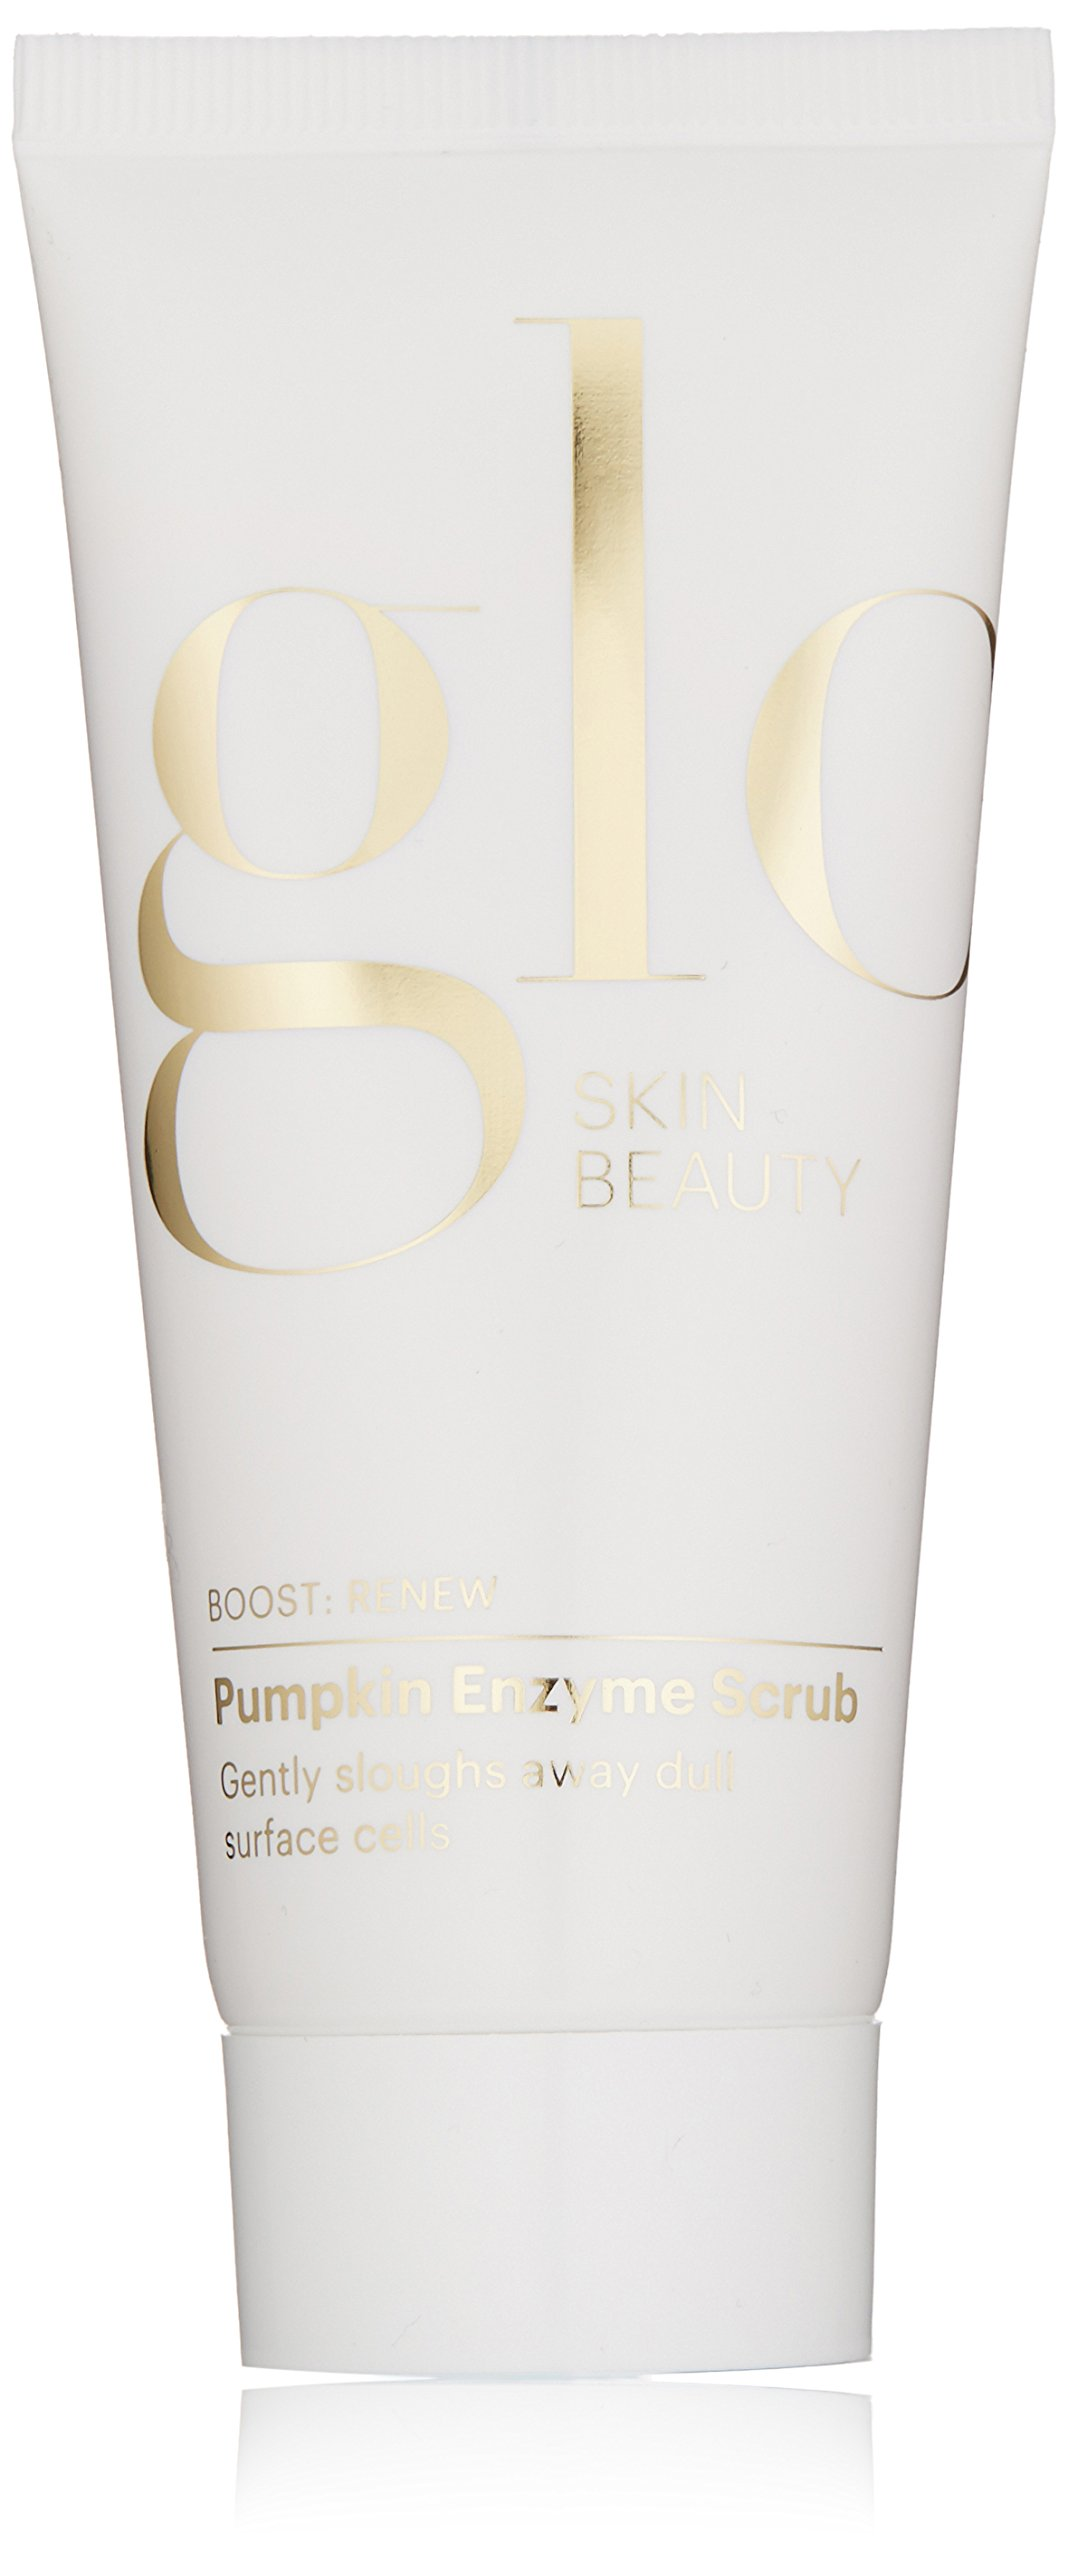 Glo Skin Beauty Pumpkin Enzyme Scrub | Face Exfoliant with Chemical and Physical Exfoliation | Environmentally-Friendly